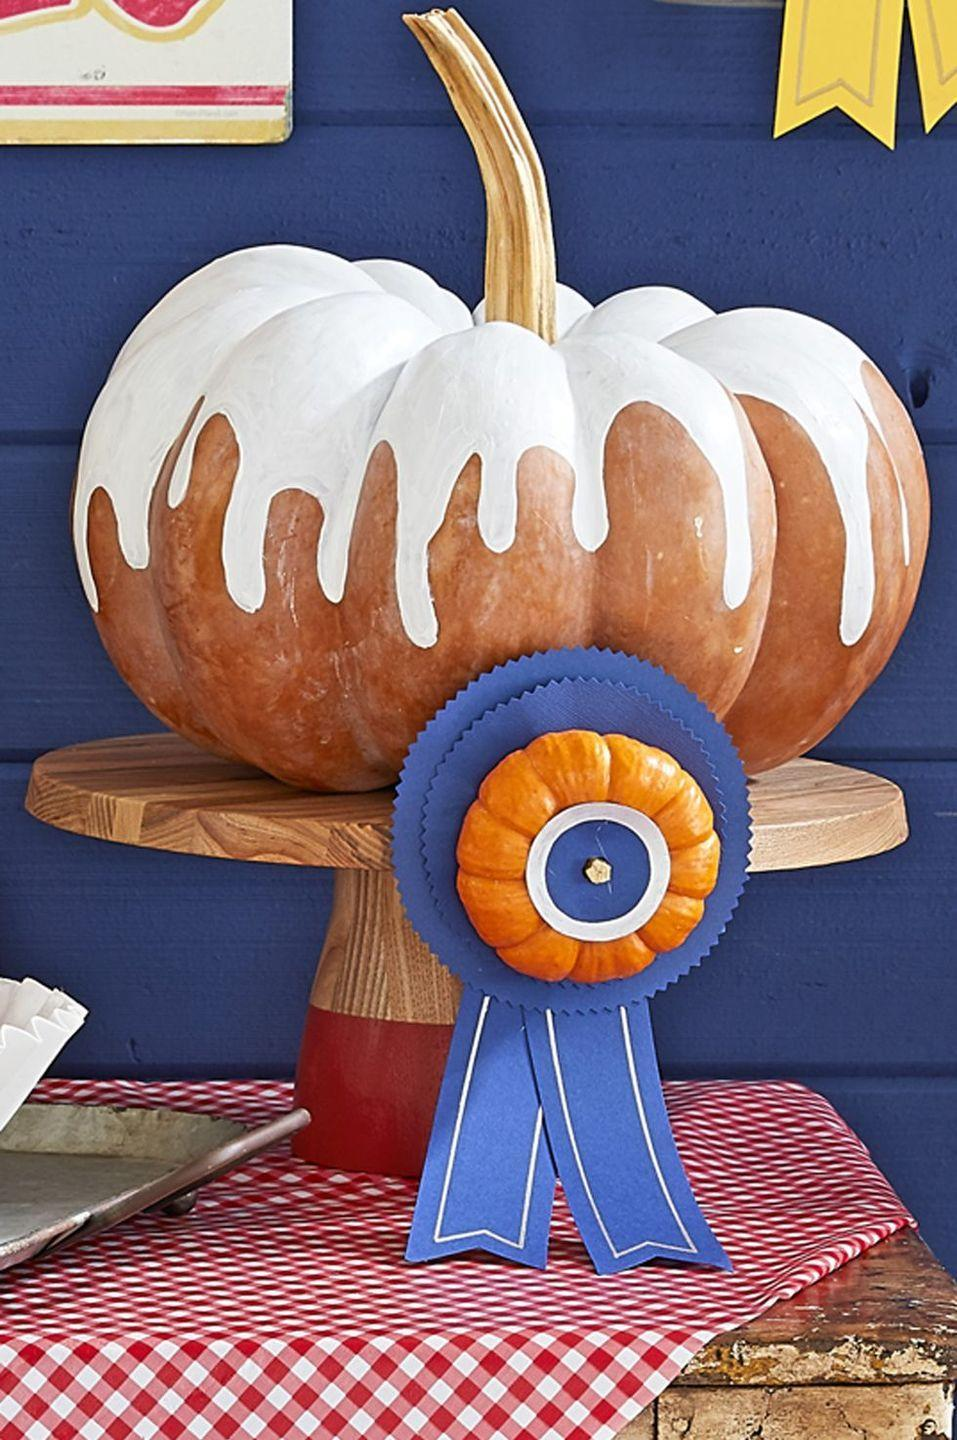 """<p>Your sweet tooth will take center stage with this painted pumpkin. And if you want to make yours look like pumpkin pie, then try to find a pumpkin with a rich rustic color as opposed to bright orange (or slap on a coat of rust-colored paint, if all else fails). </p><p><em><a href=""""https://www.countryliving.com/diy-crafts/g1363/painted-pumpkins/"""" rel=""""nofollow noopener"""" target=""""_blank"""" data-ylk=""""slk:Get the tutorial at Country Living »"""" class=""""link rapid-noclick-resp"""">Get the tutorial at Country Living »</a></em></p>"""